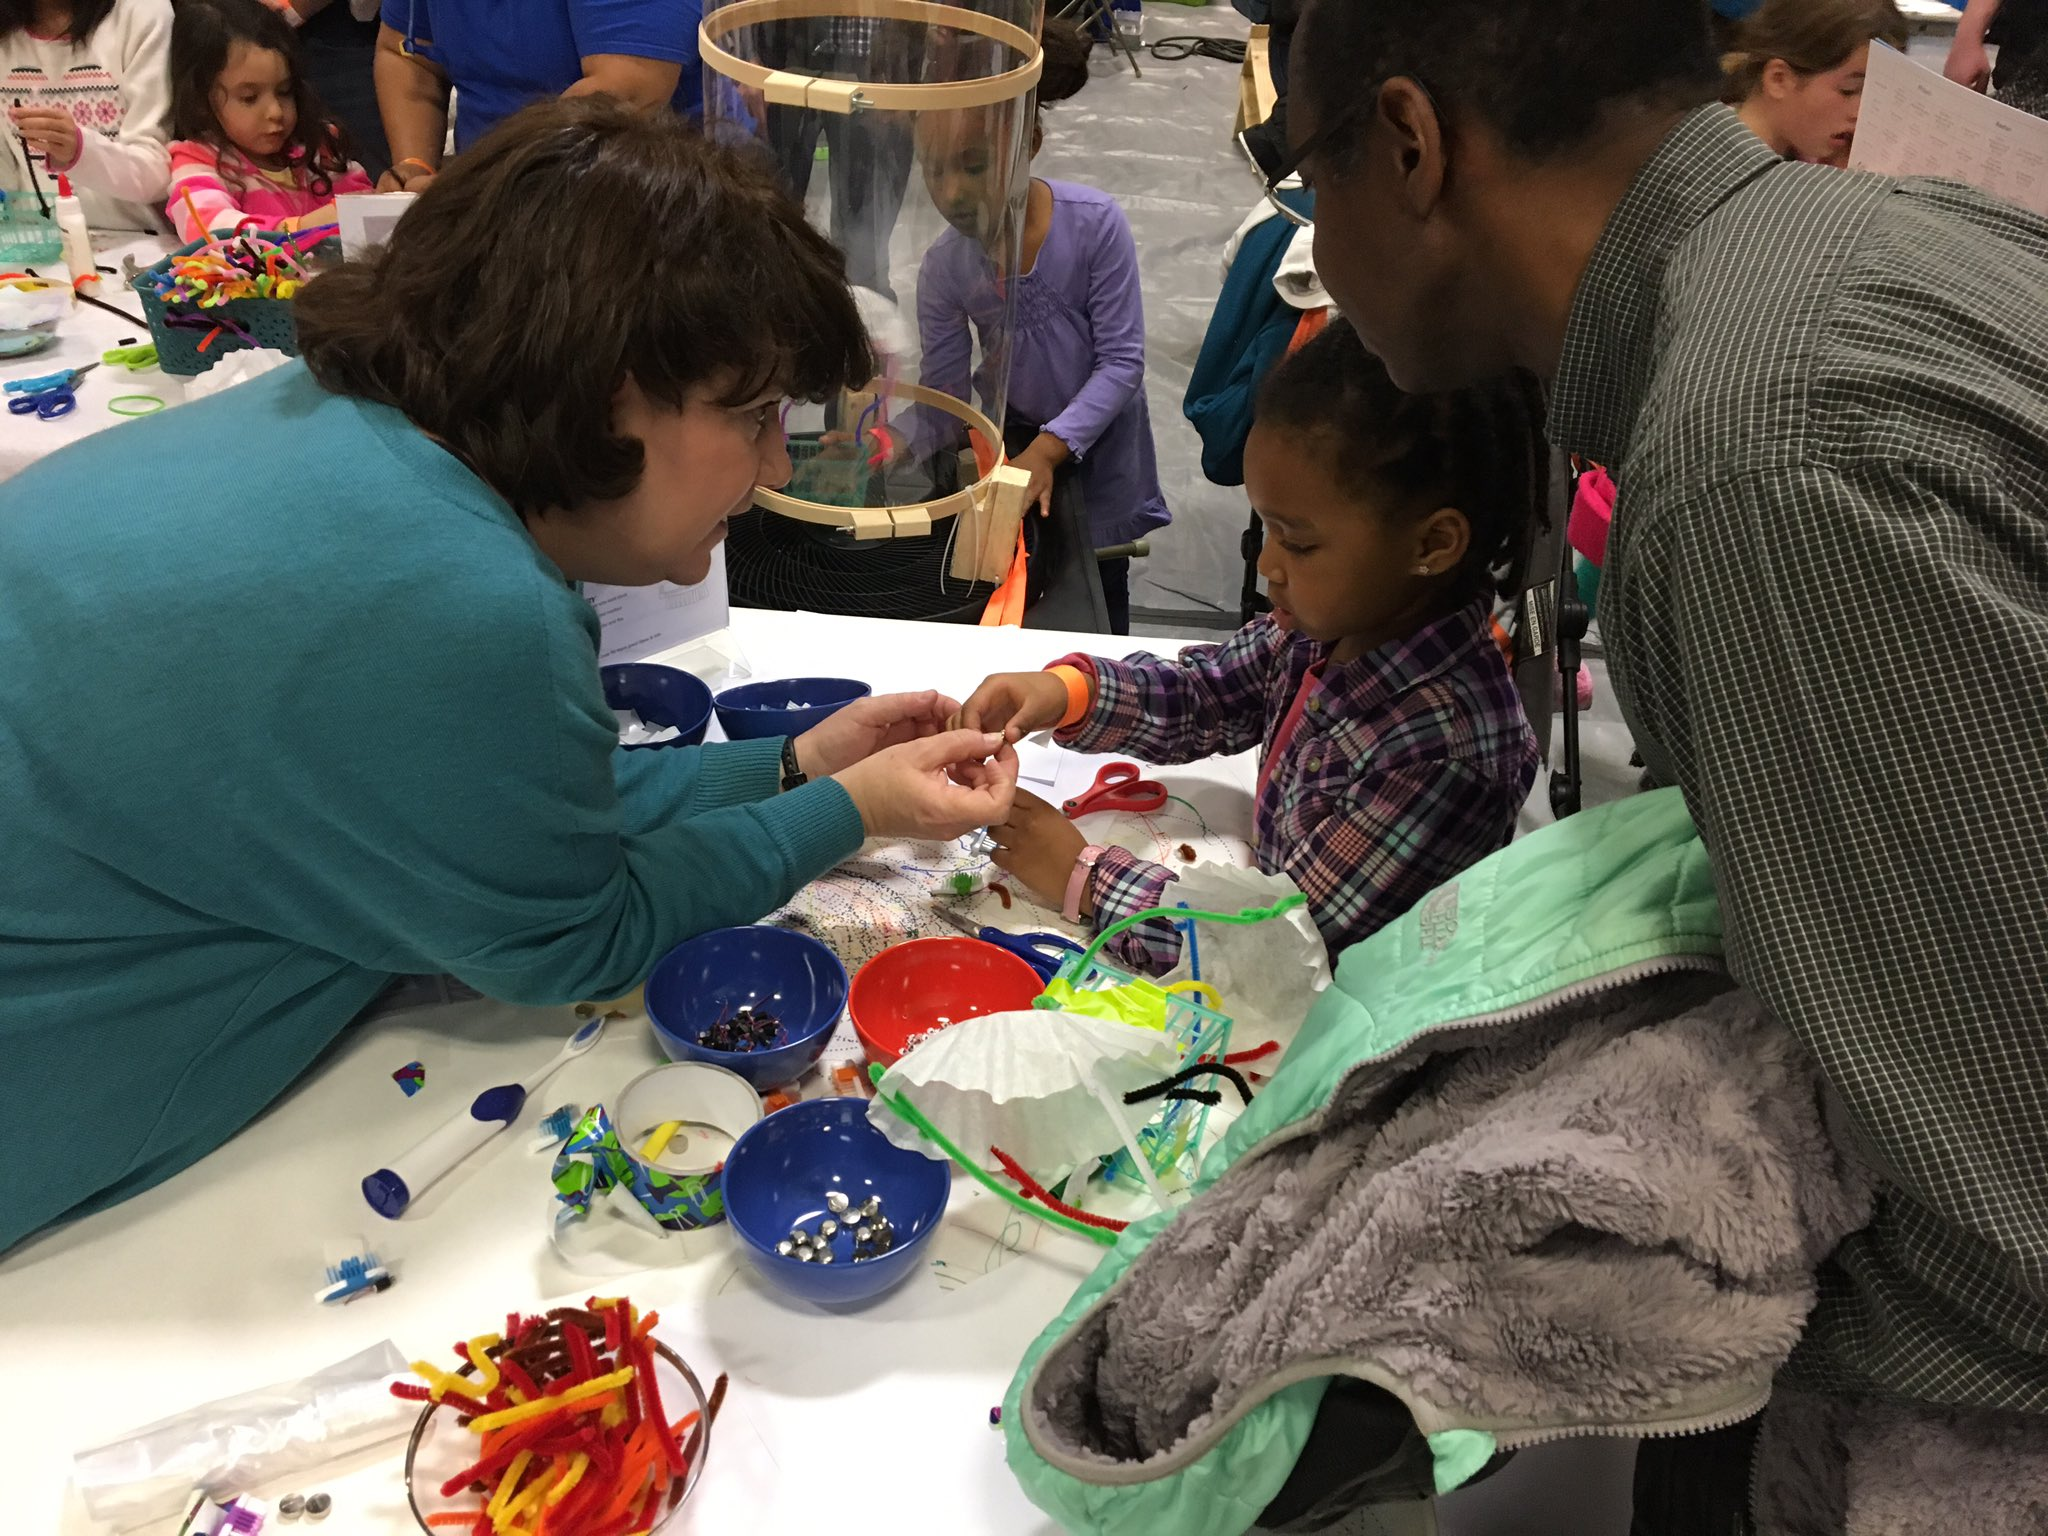 Sarah Magner: showing how its done: Eyes on child, just holding the part to help HER make it. @peacefulpendant  #makerfairenova #myflinthill https://t.co/VqxGXVOiuv